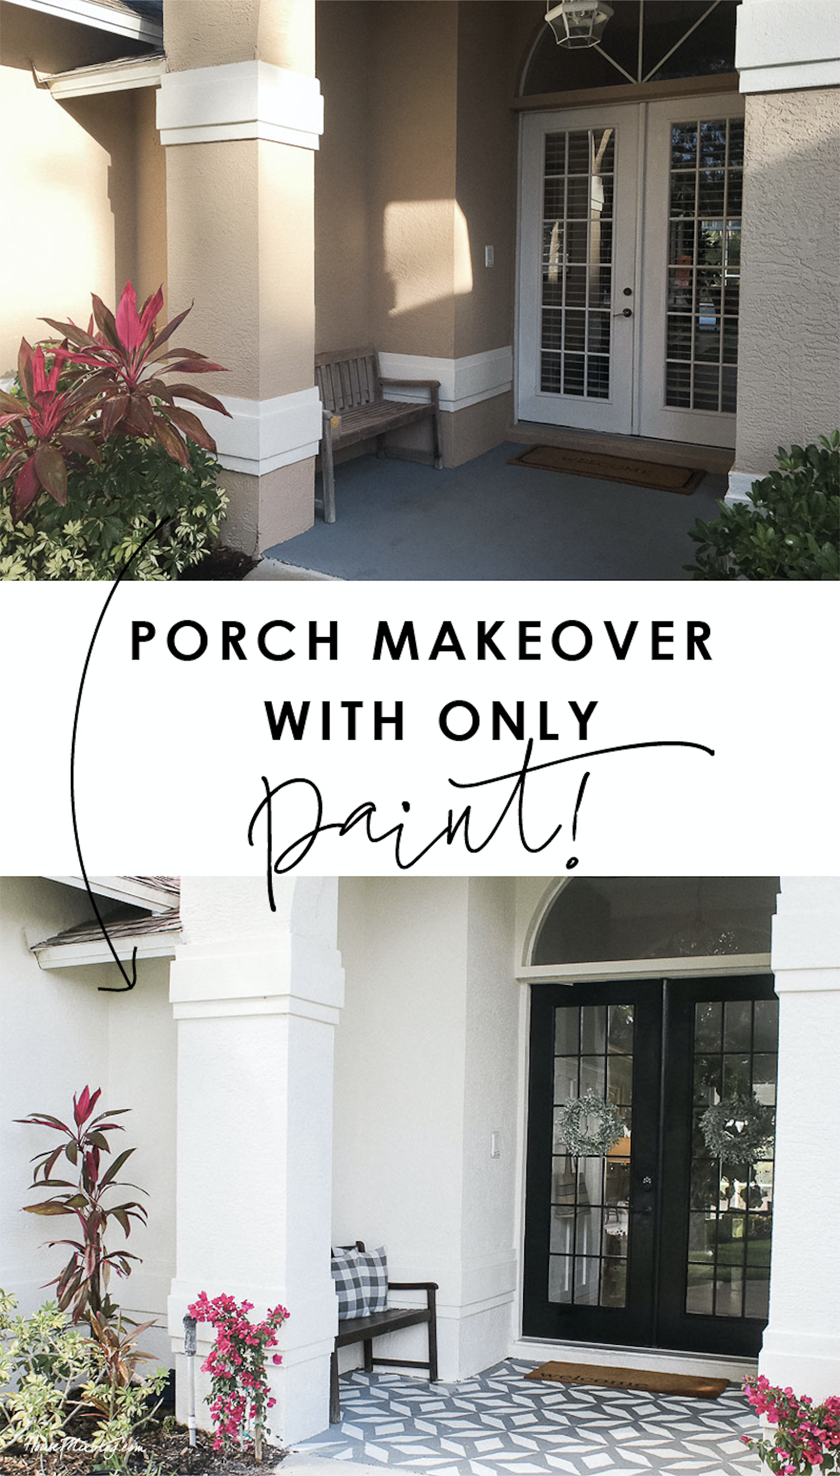 Front porch makeover with only paint - walls, floor stencil and French front door - before and after